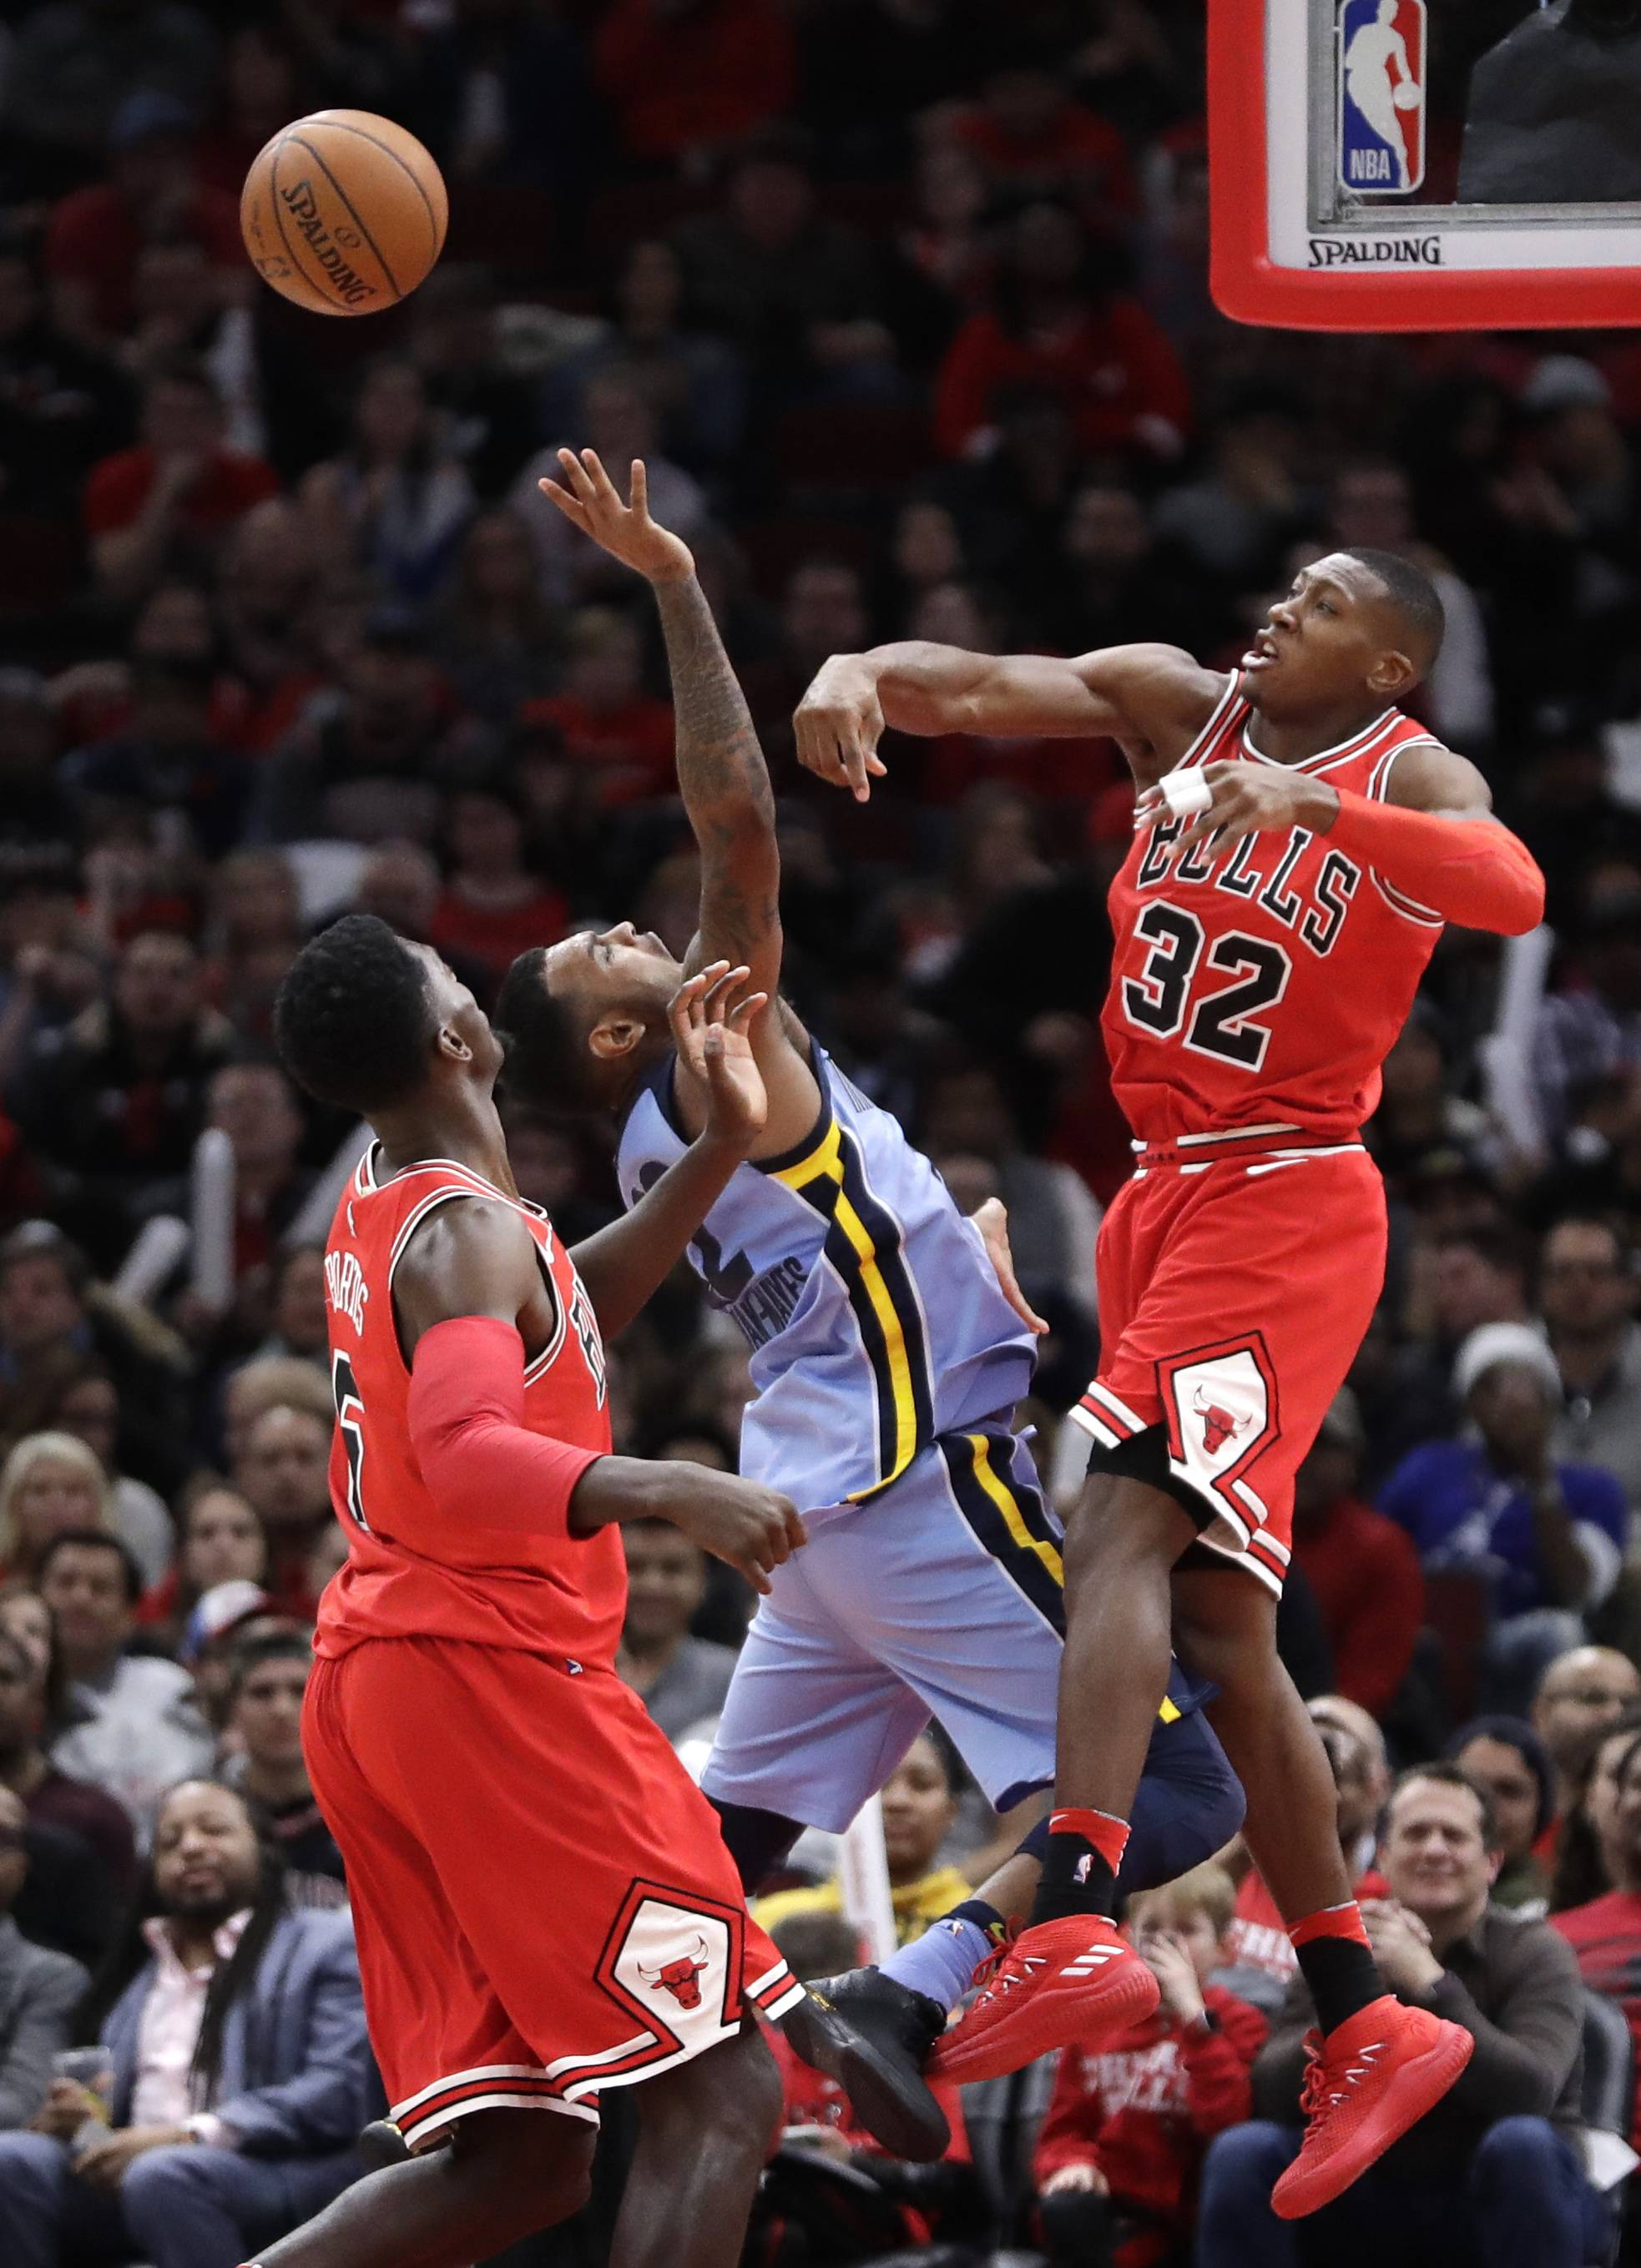 Chicago Bulls' Kris Dunn (32) blocks the shot of Xavier Rathan-Mayes as Bobby Portis watches during the second half of an NBA basketball game against the Memphis Grizzlies Wednesday, March 7, 2018, in Chicago